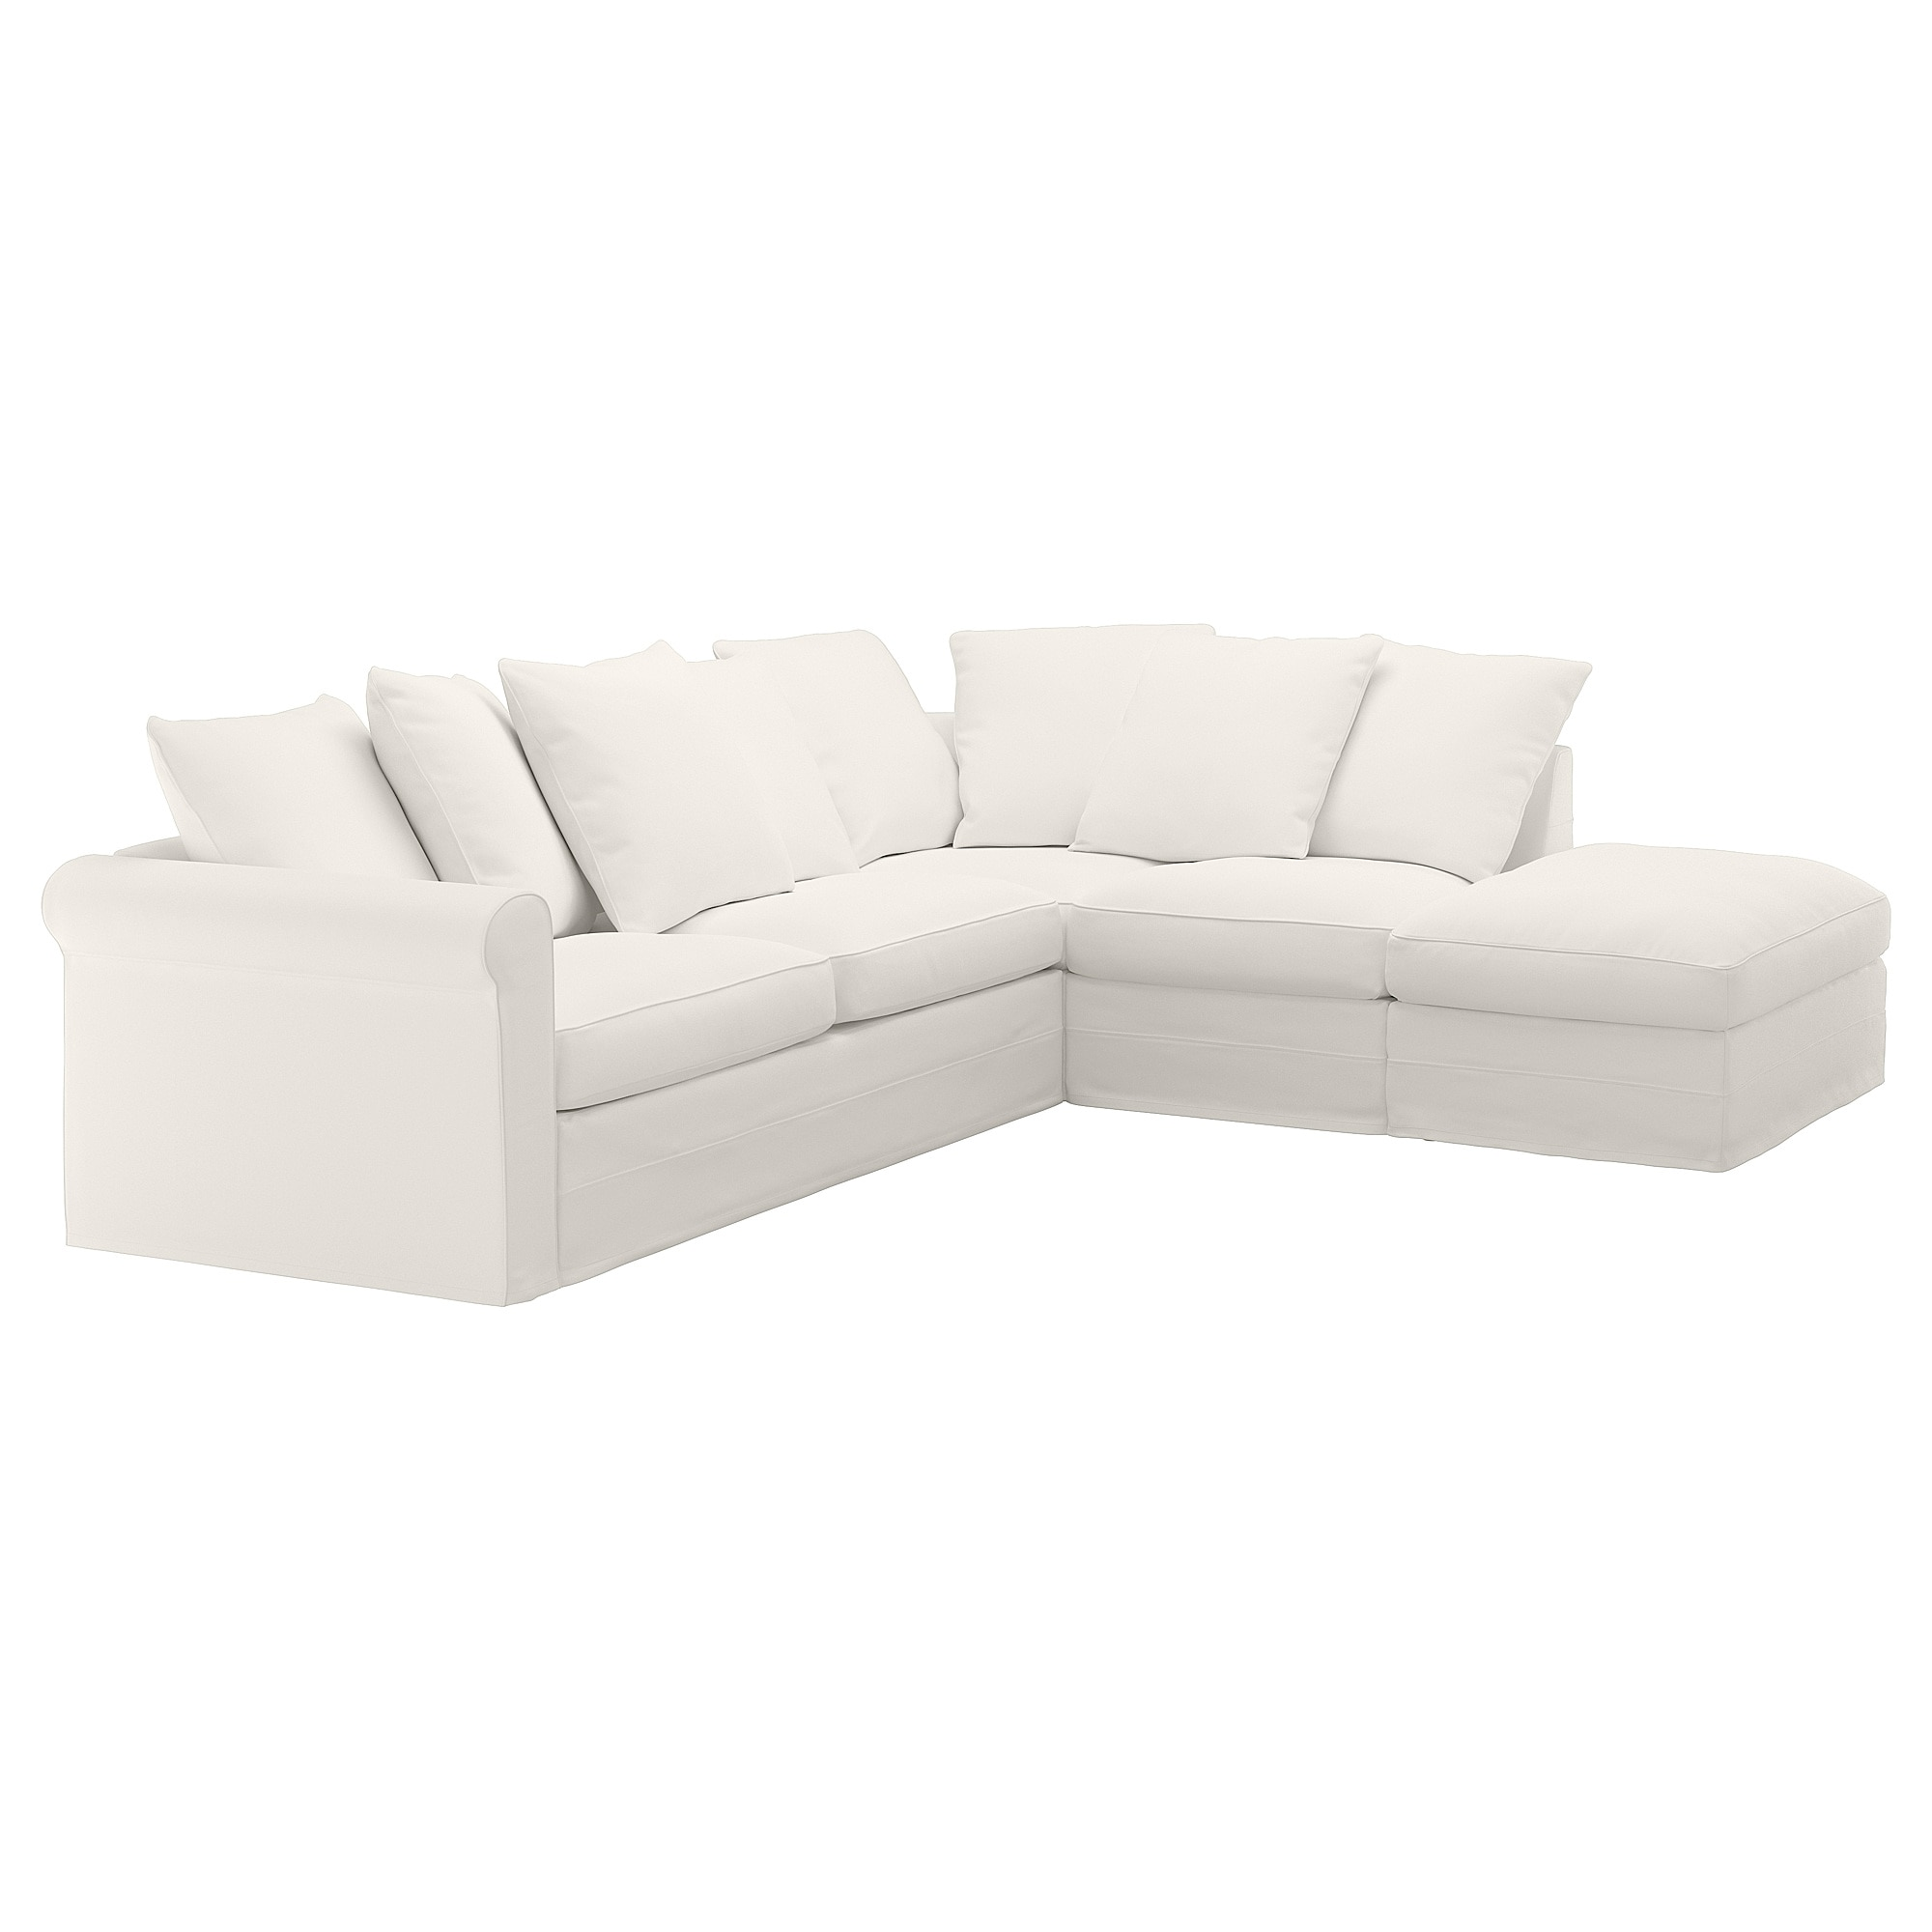 Corner sleeper sofa, 4-seat GRÖNLID with open end, Inseros white